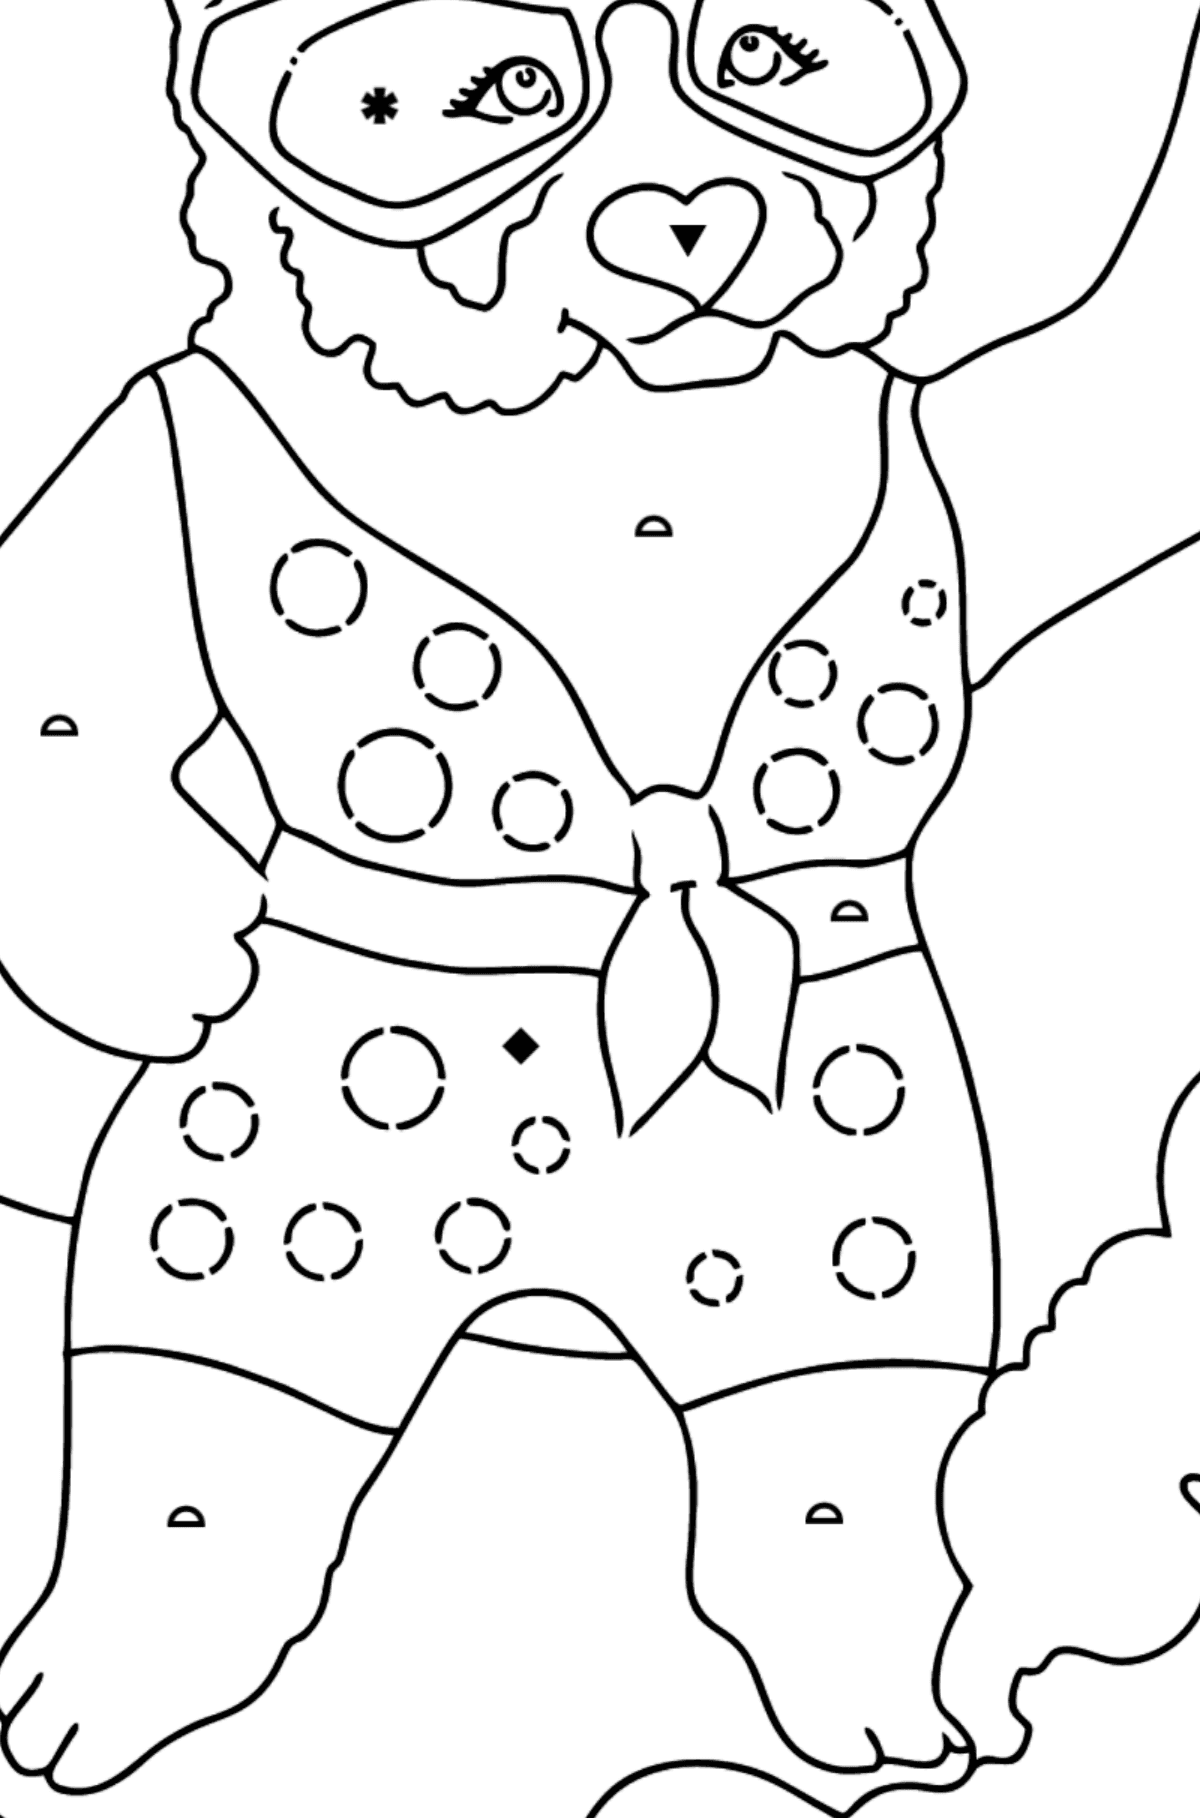 Coloring Page - A Panda Surfer - Coloring by Symbols and Geometric Shapes for Kids